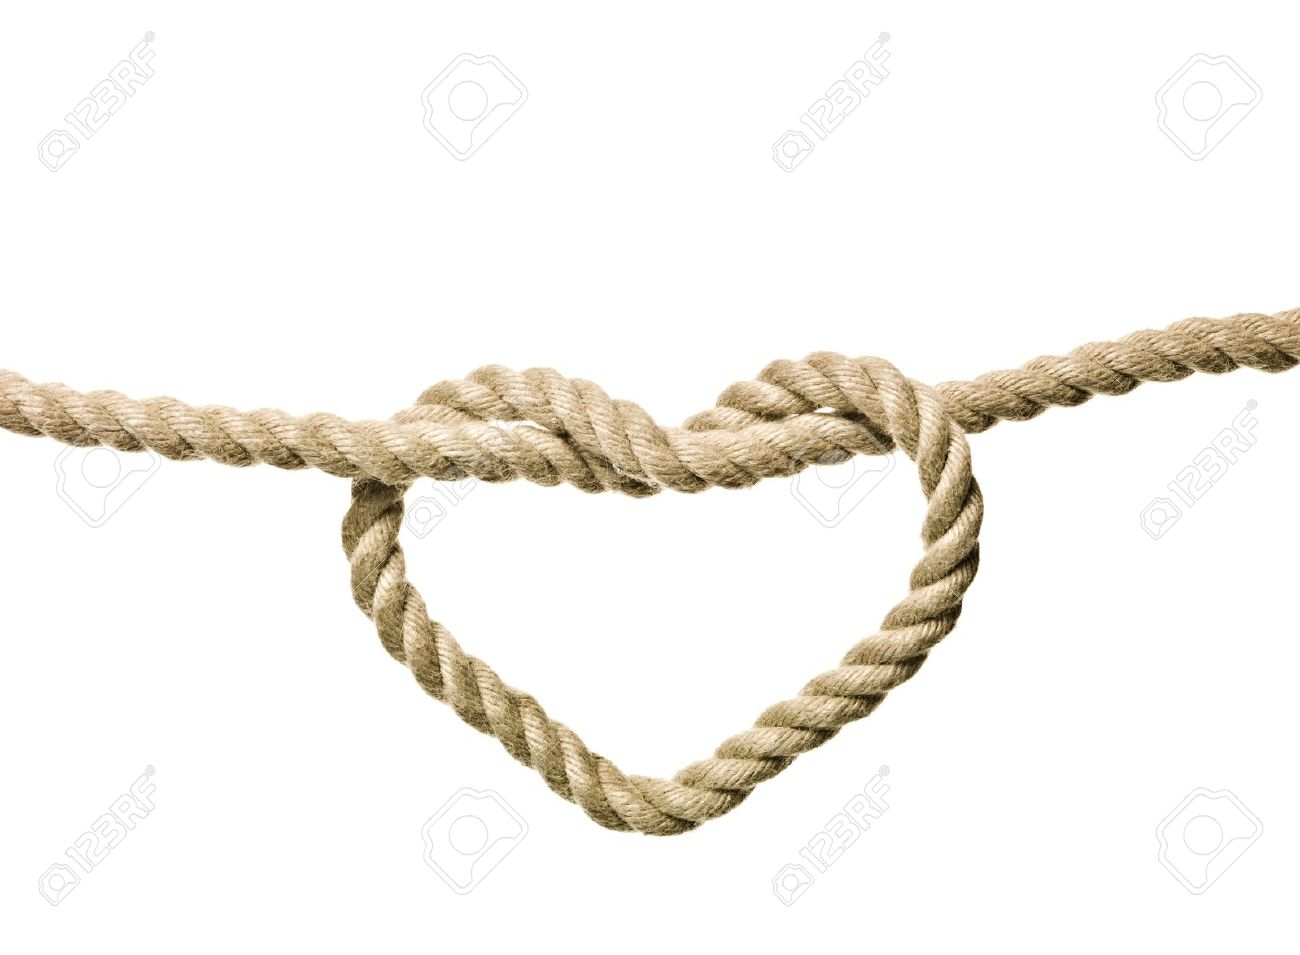 Heart Shaped Knot on a rope isolated Stock Photo - 8048876